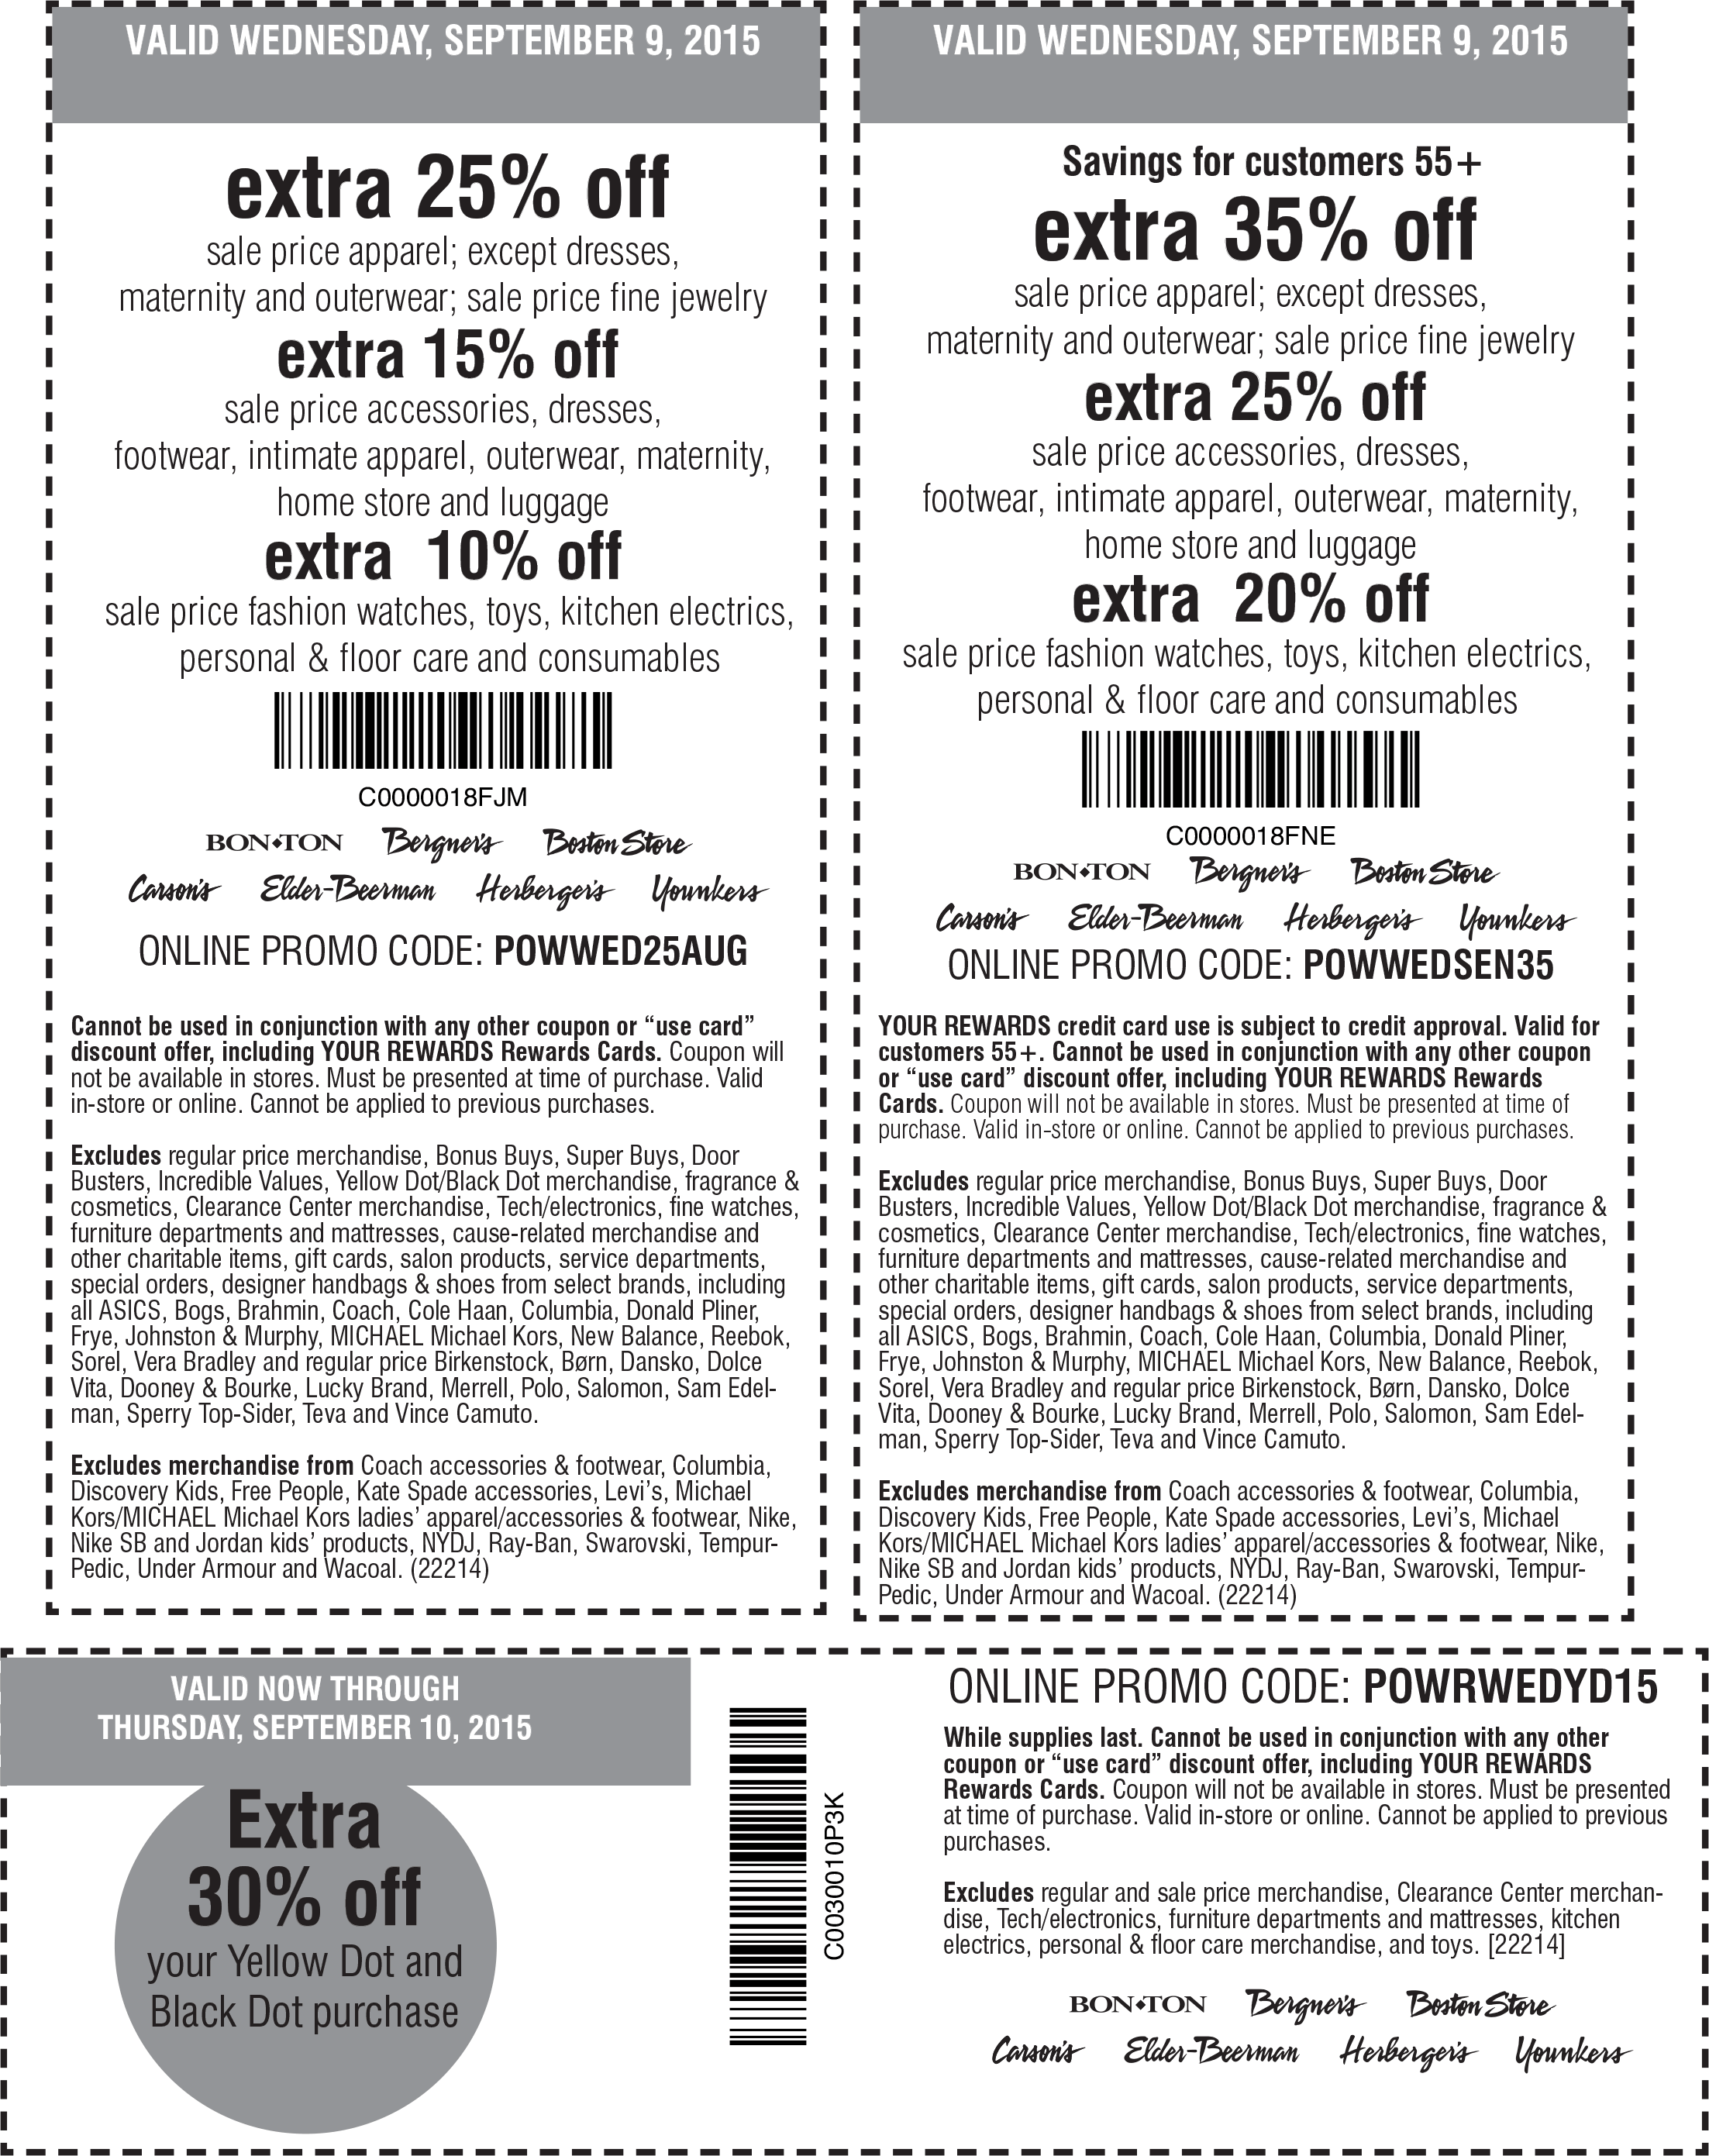 Carsons Coupon December 2016 Extra 25-35% off sale apparel & more at Carsons, Bon Ton & sister stores, or online via promo code POWWED25AUG